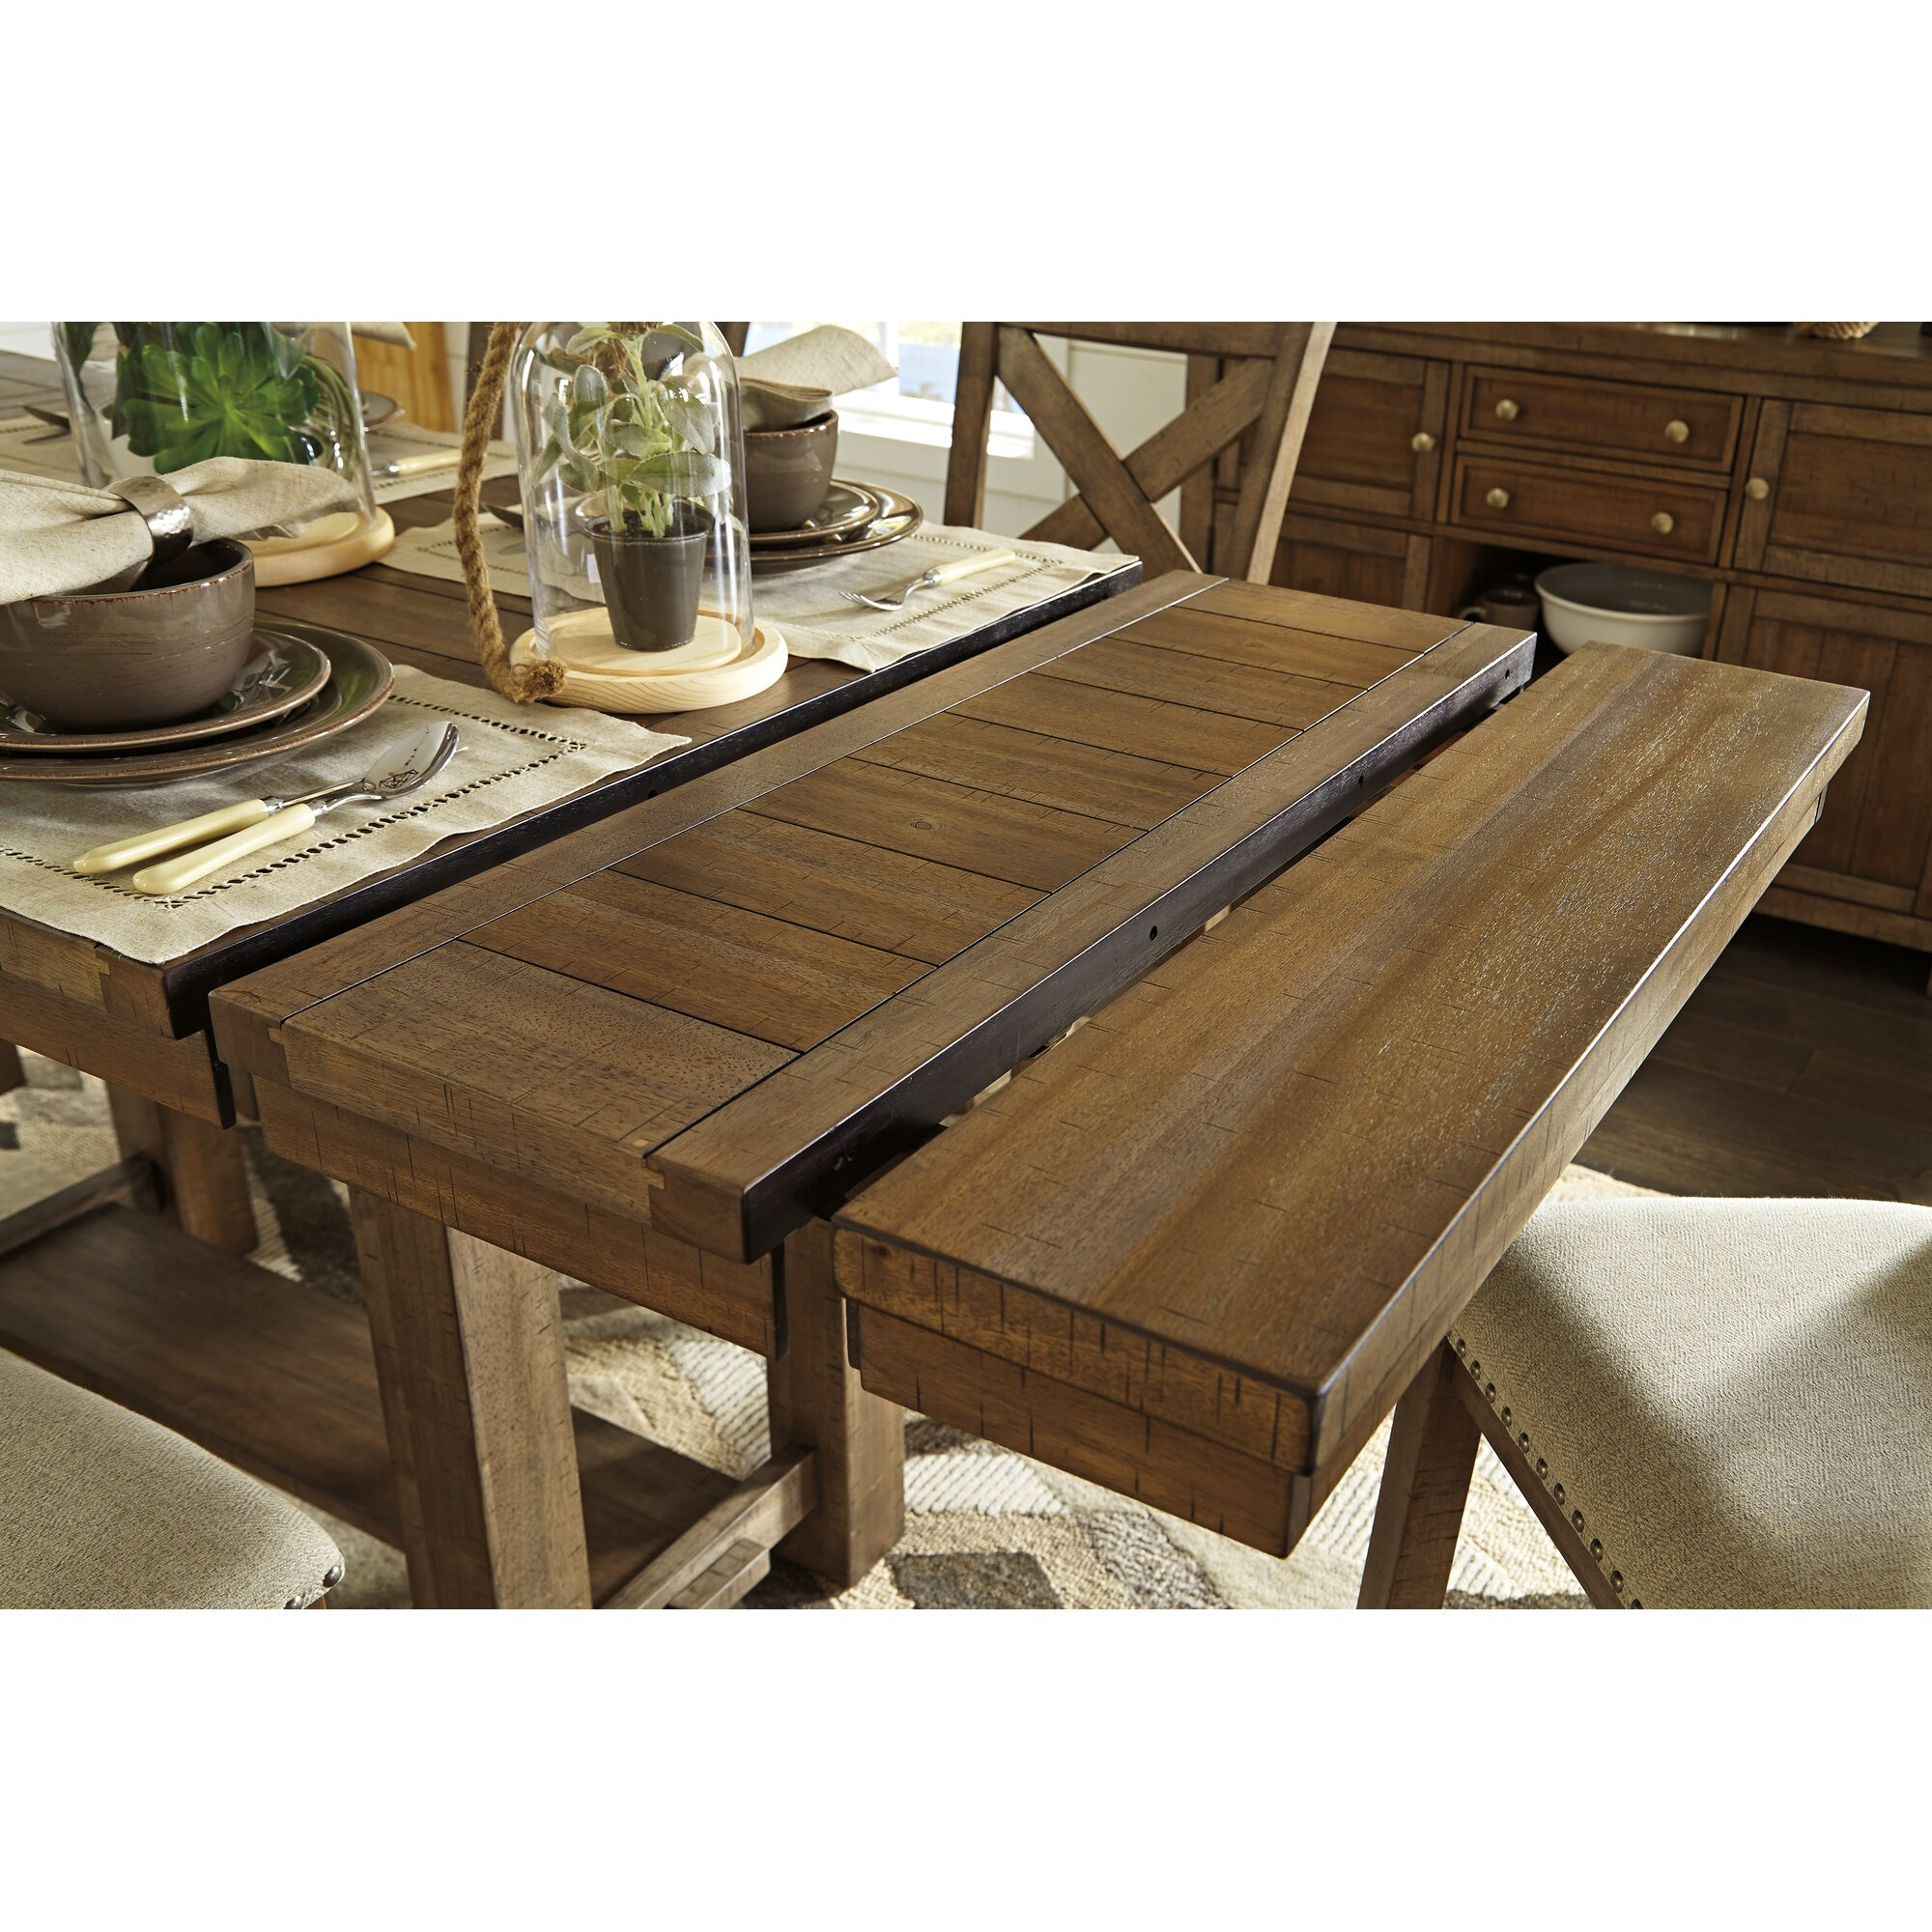 Laurel foundry modern farmhouse hillary rectangular counter height extendable dining table - Rectangle kitchen tables ...